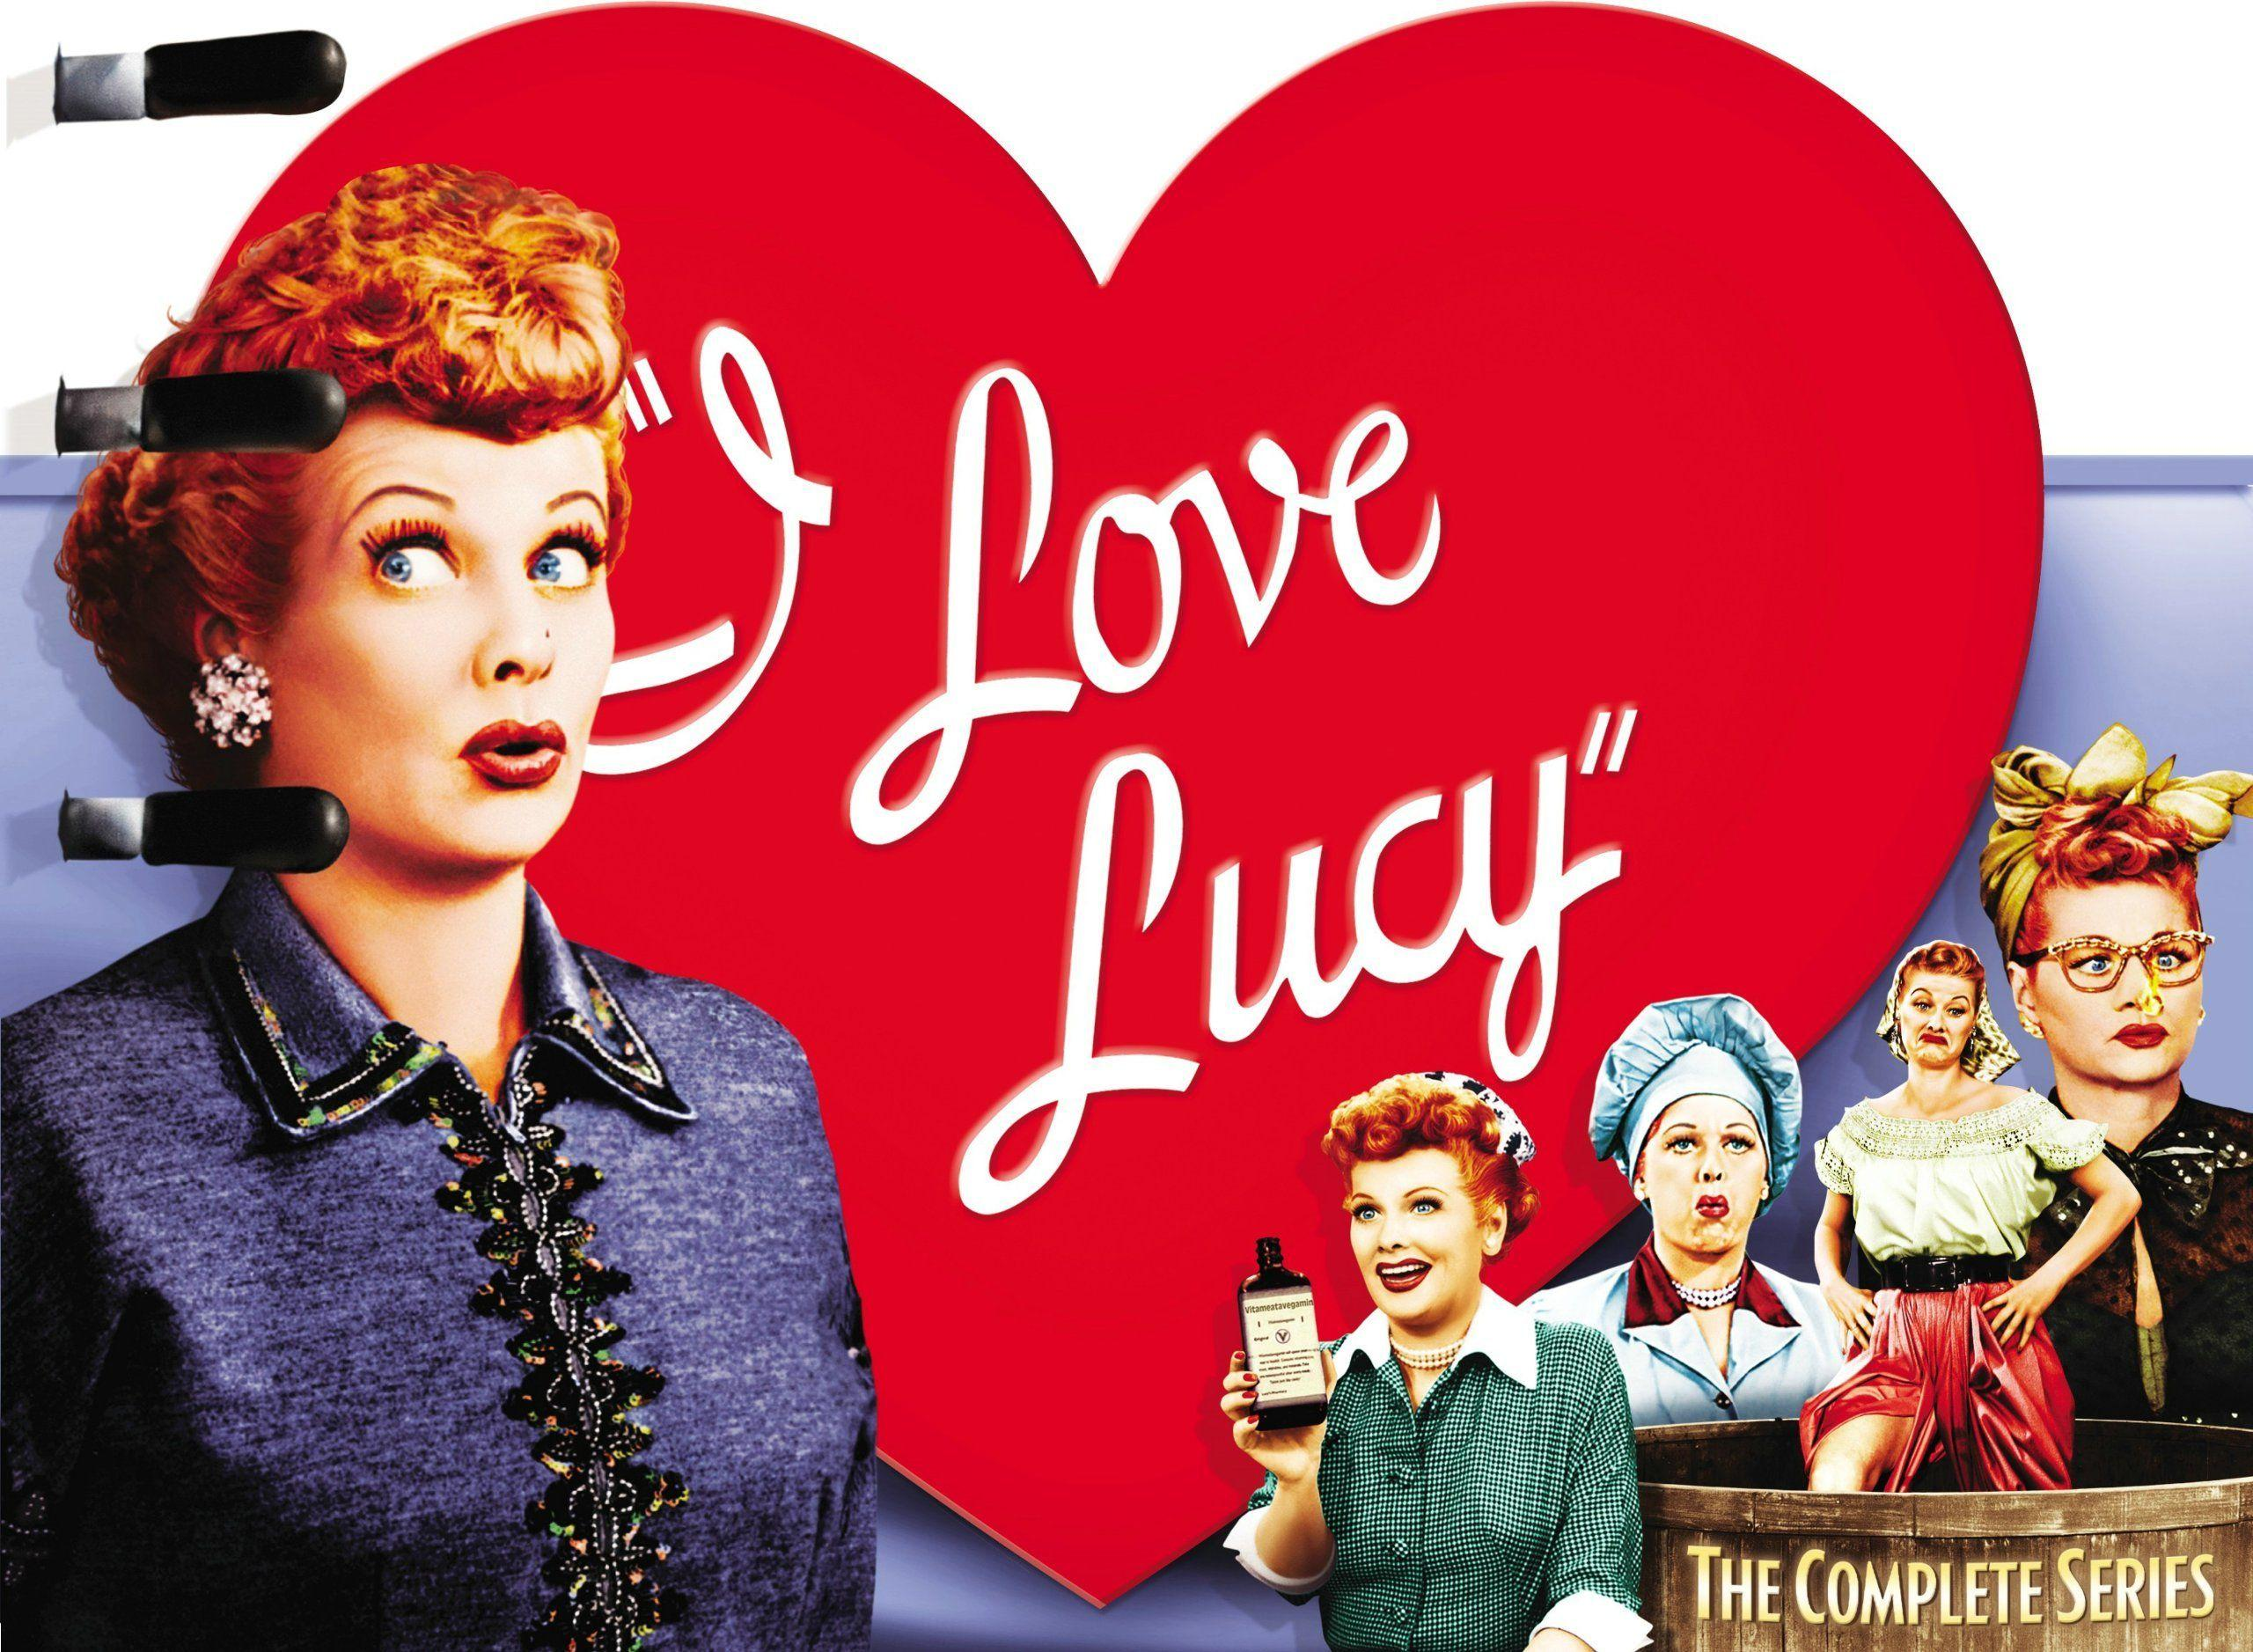 Iphone Wallpaper I Love Lucy : I Love Lucy Wallpapers - Wallpaper cave